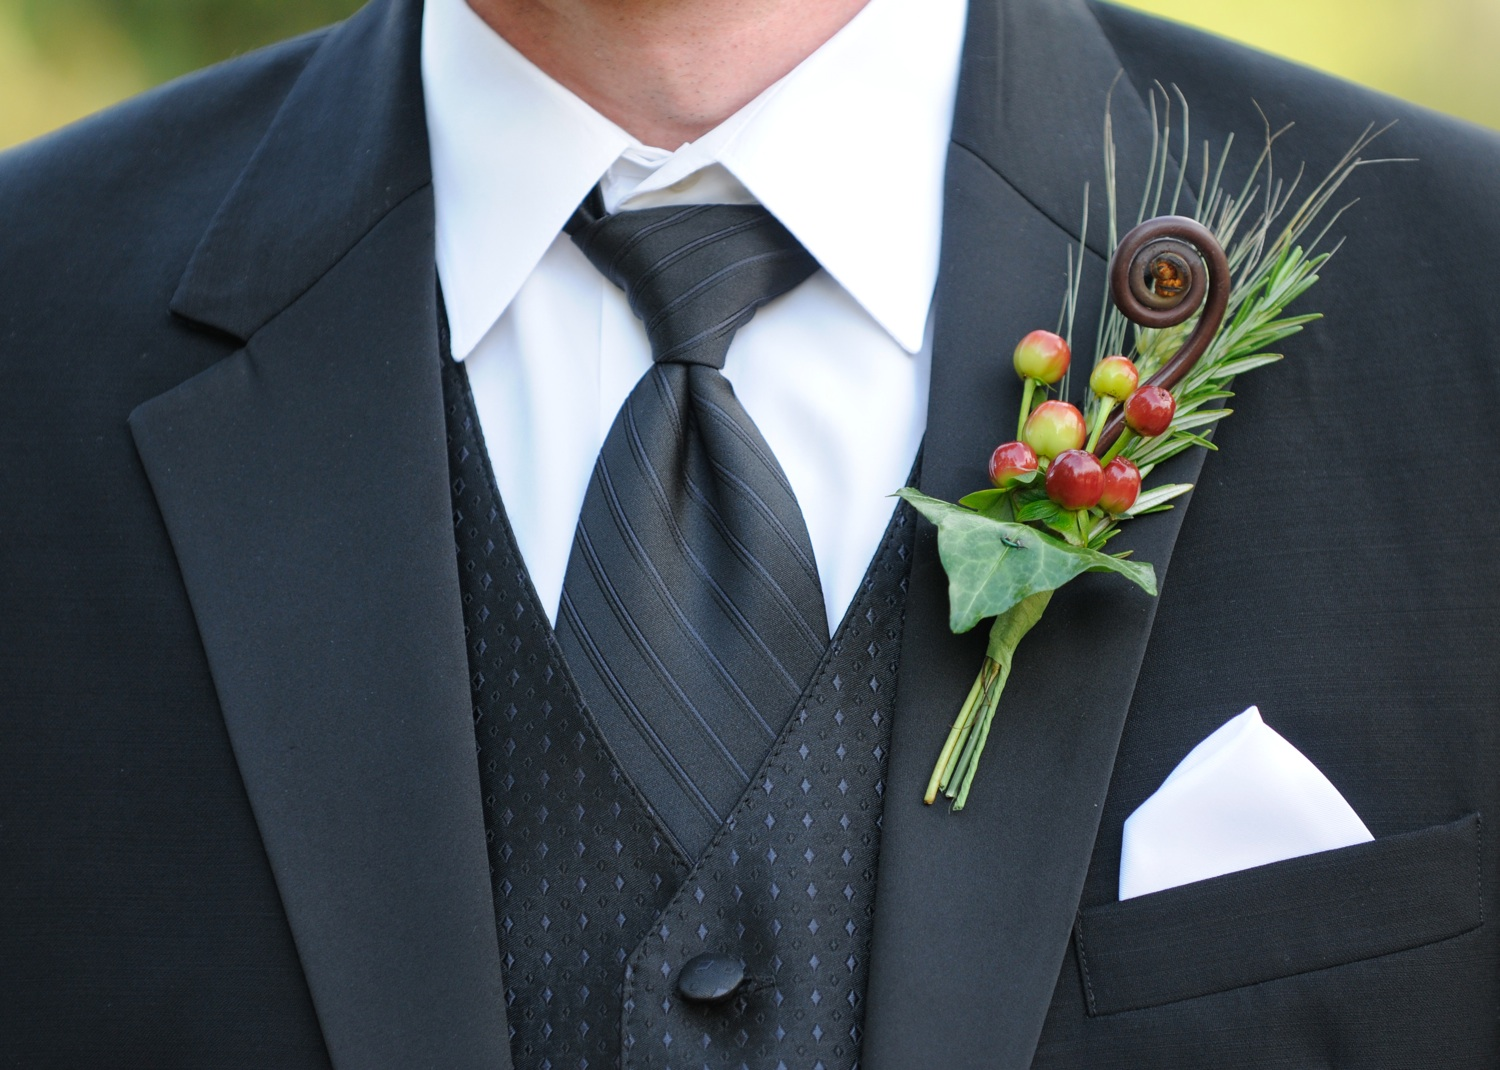 Grooms-tuxedo-fall-wedding-boutonniere.original